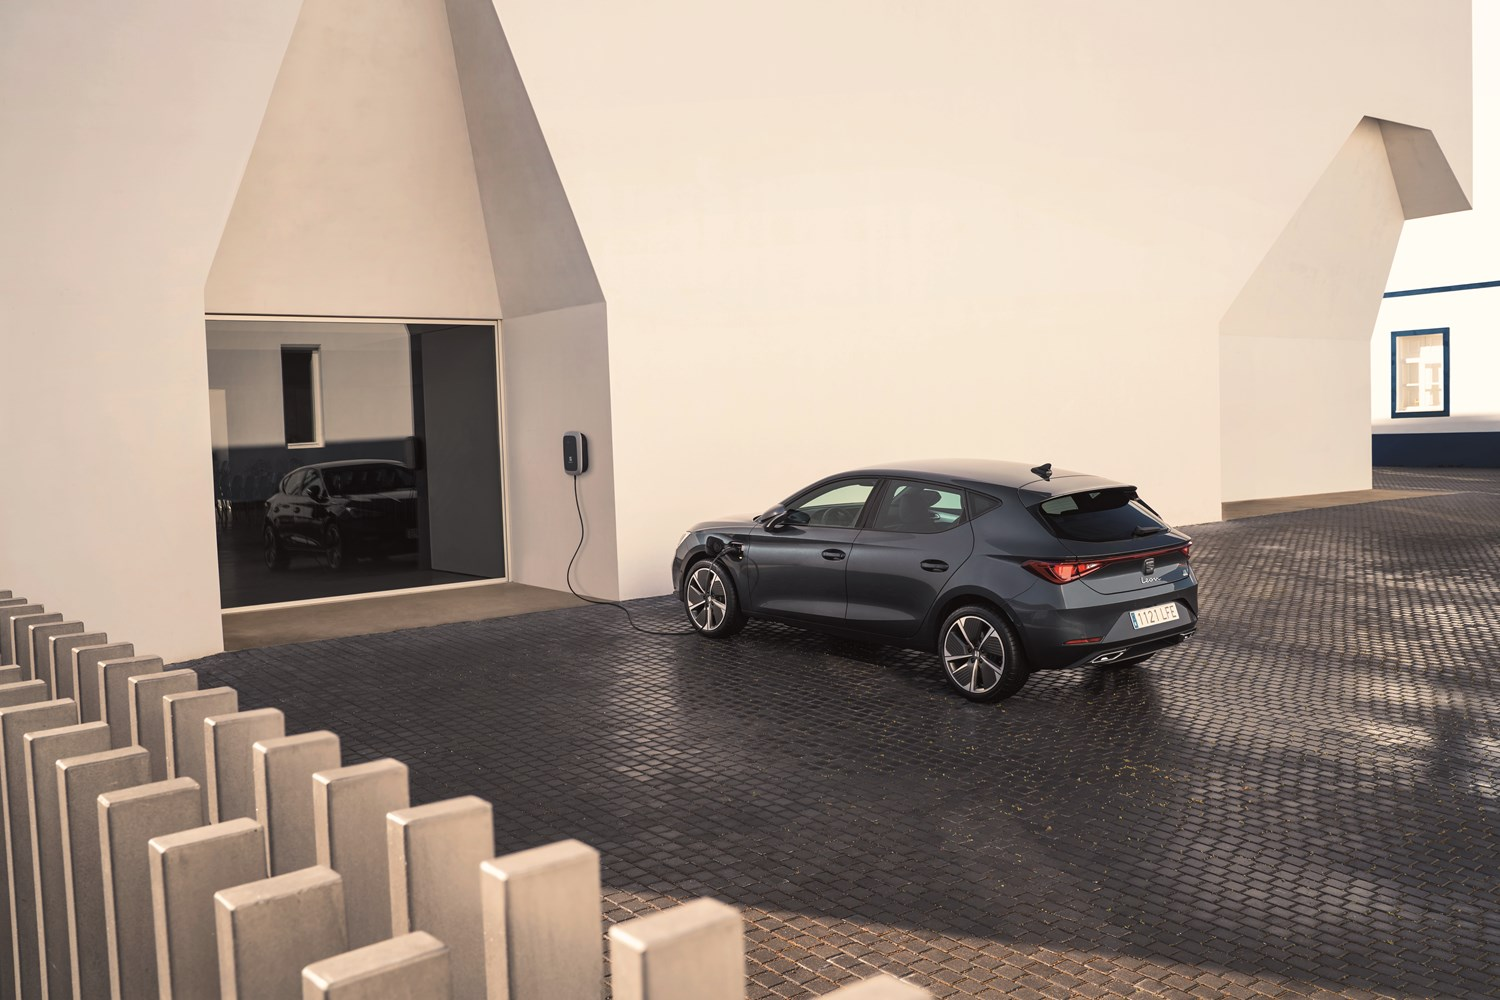 Seat Leon hybrid on block paving, plugged into wall charging point on a cream rendered wall near to a black door